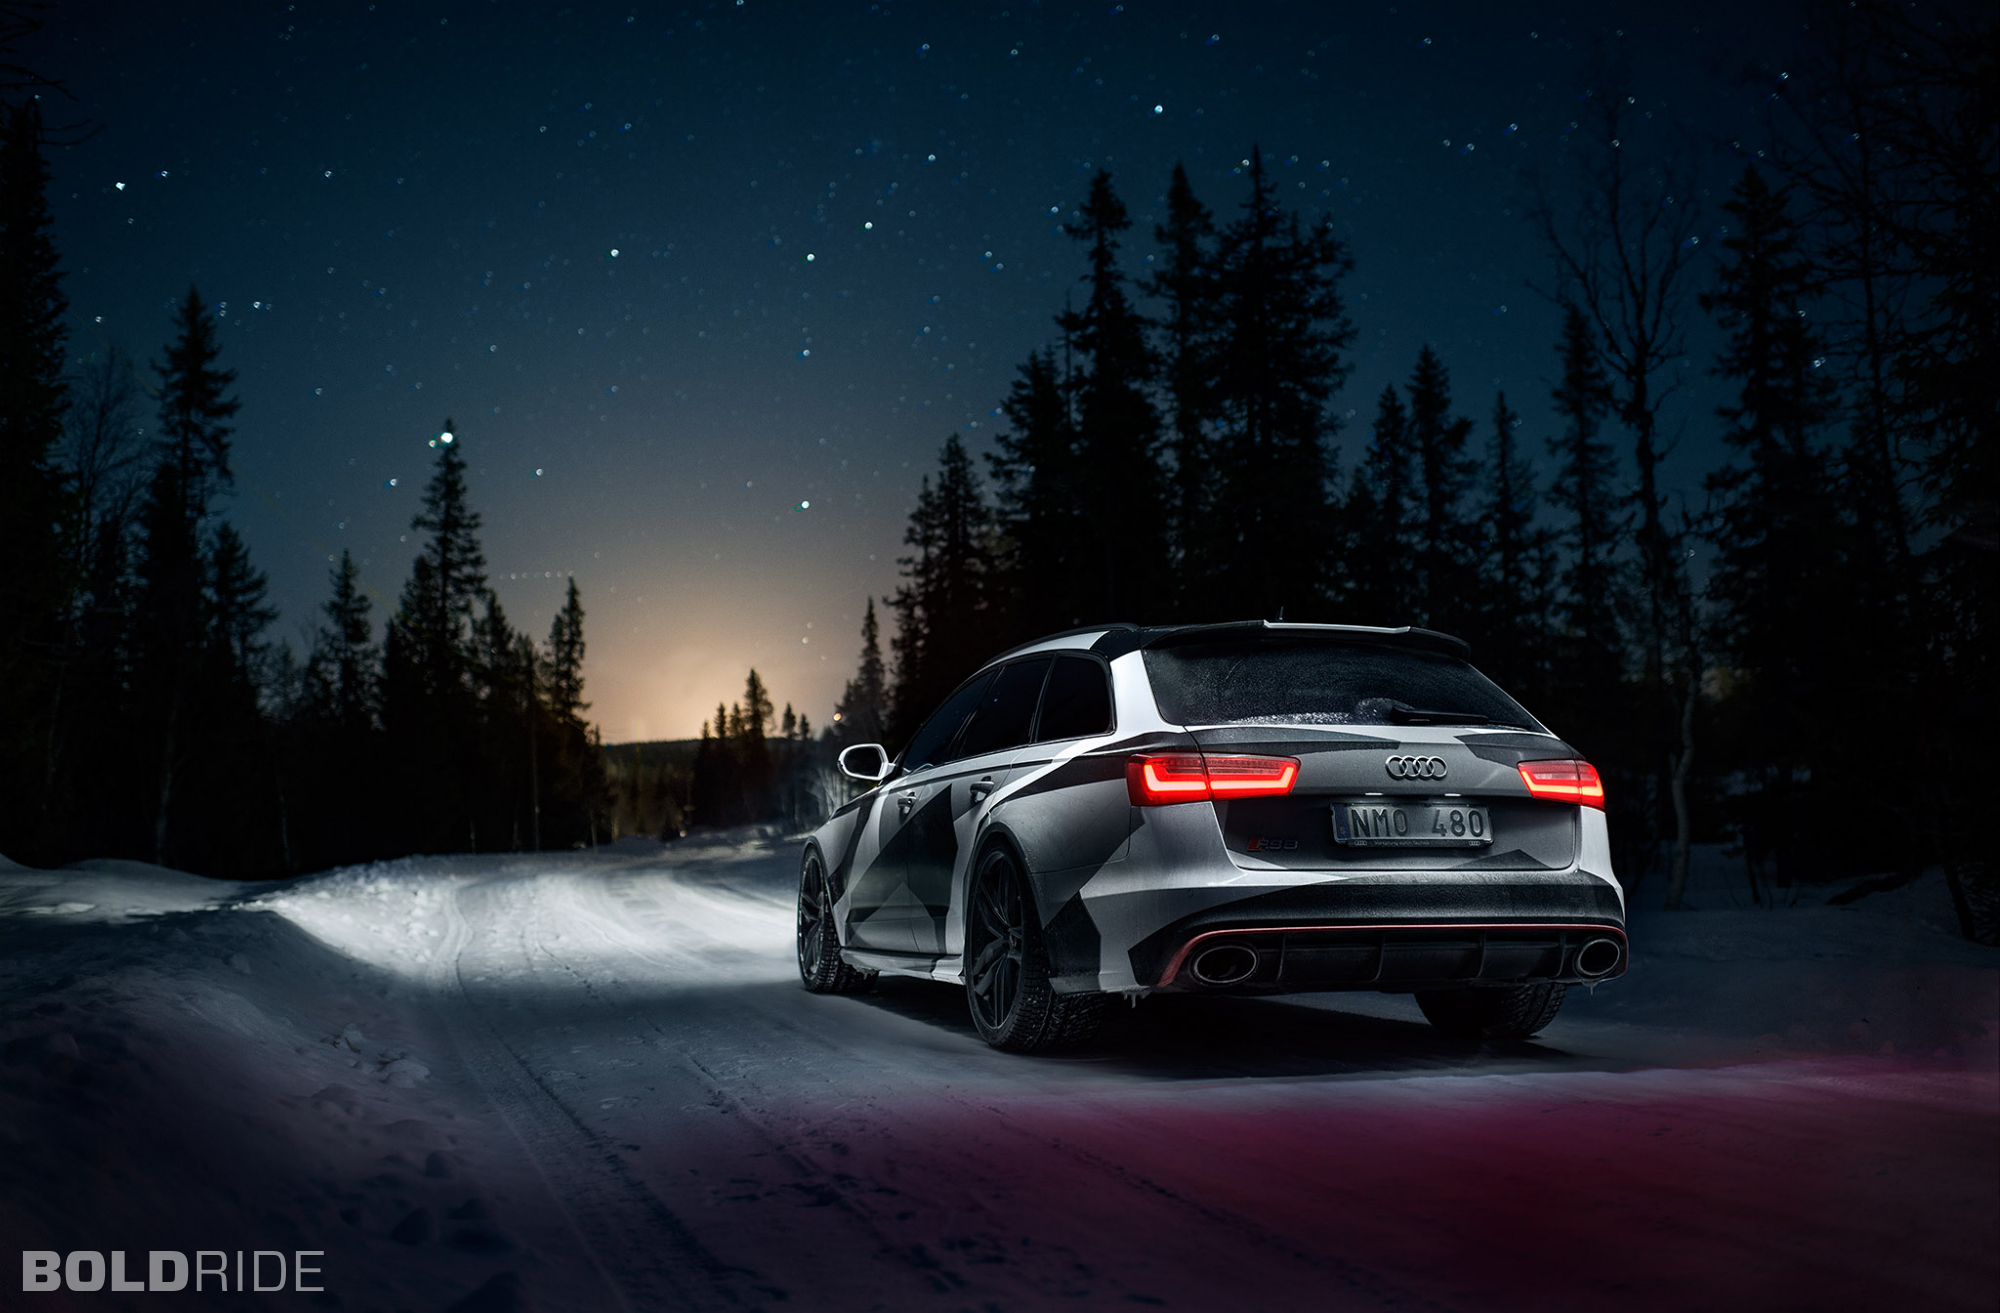 2000x1313 - Audi RS6 Wallpapers 8